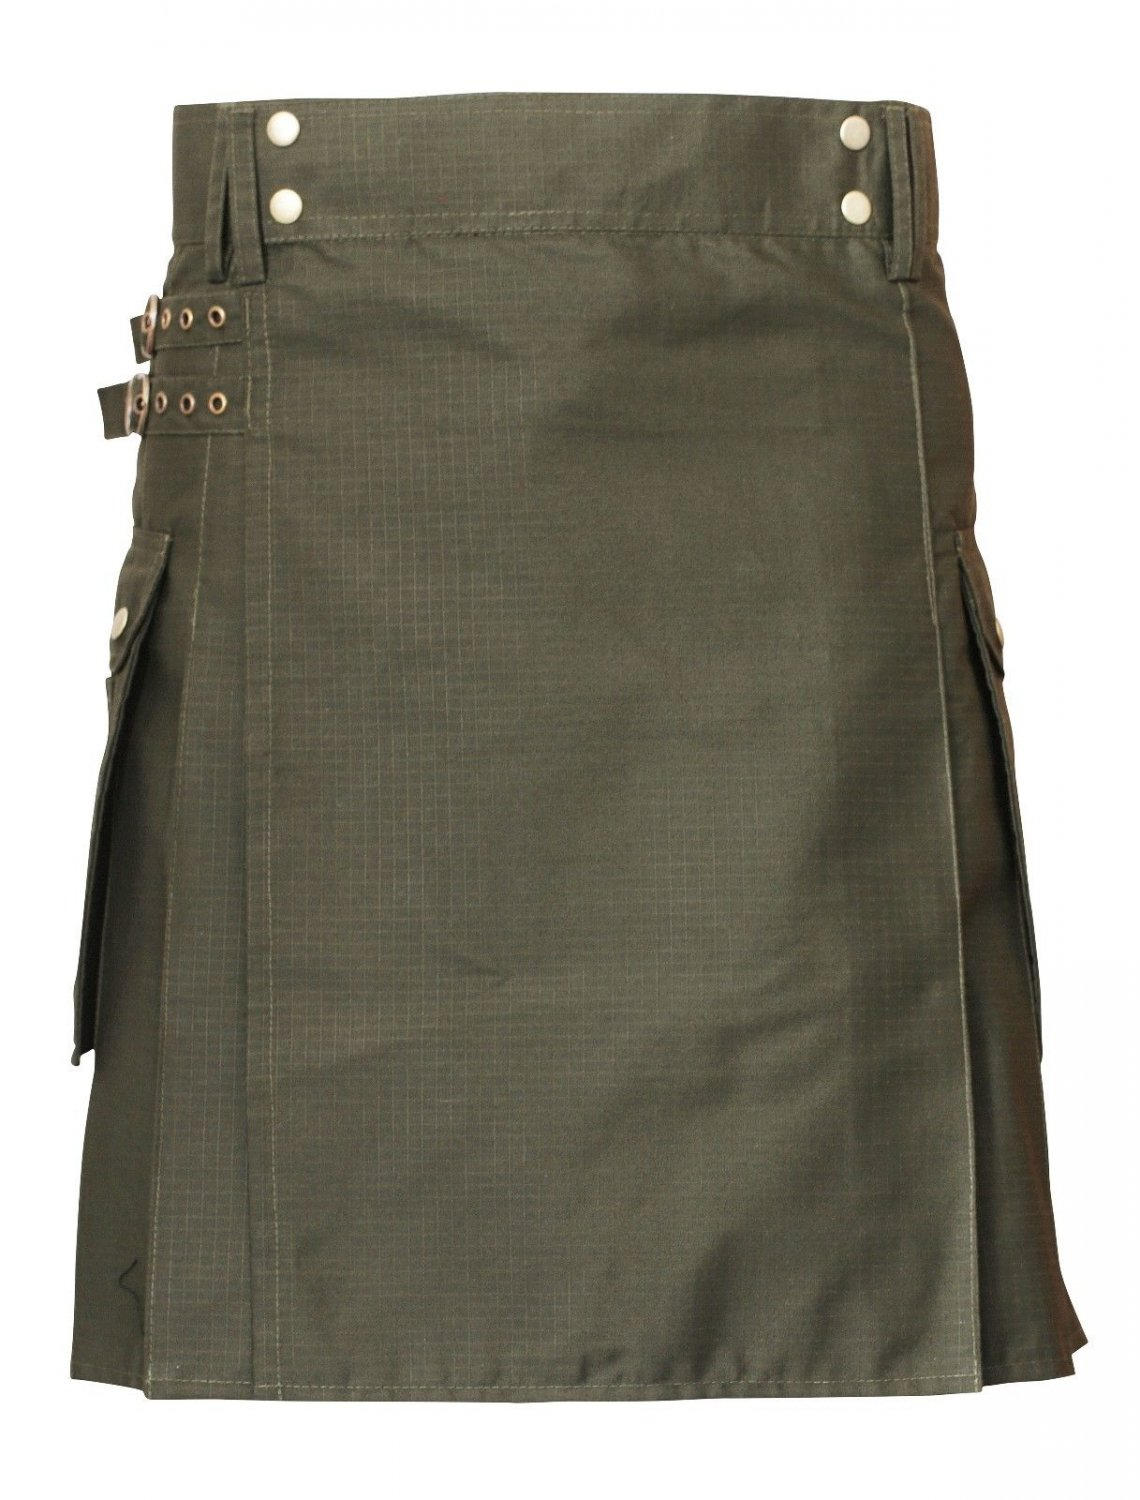 54 Size Traditional Scottish Utility Heavy Rip Stop Cotton Kilt Olive Green Cotton Deluxe Kilt